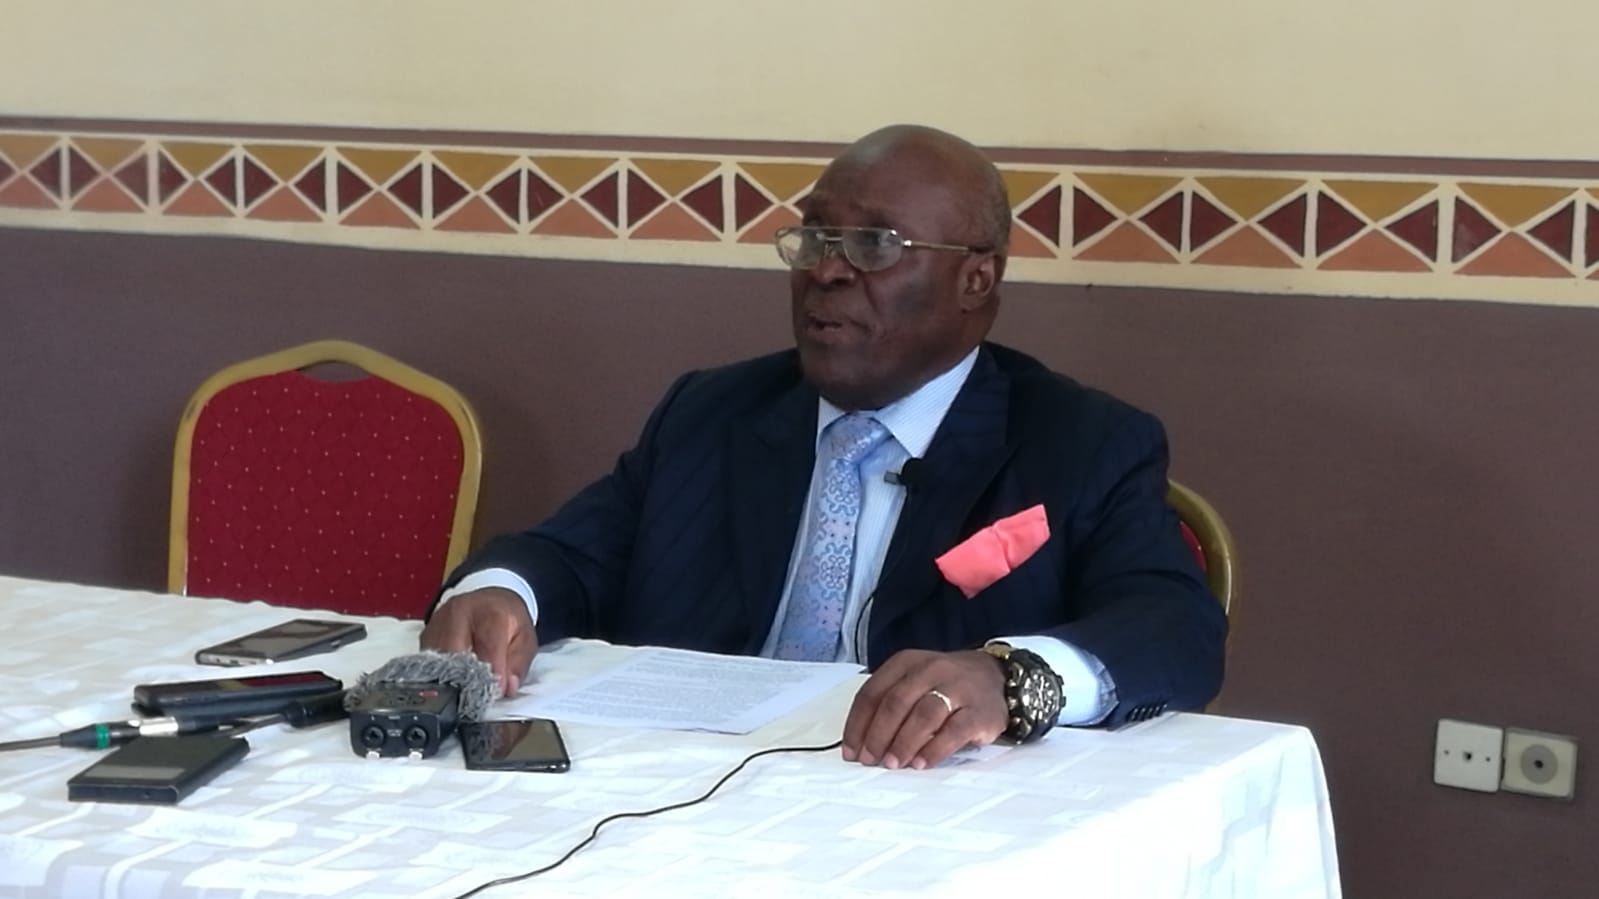 DRC: Economic and Social Council, the mandate of the 68 members has ended!